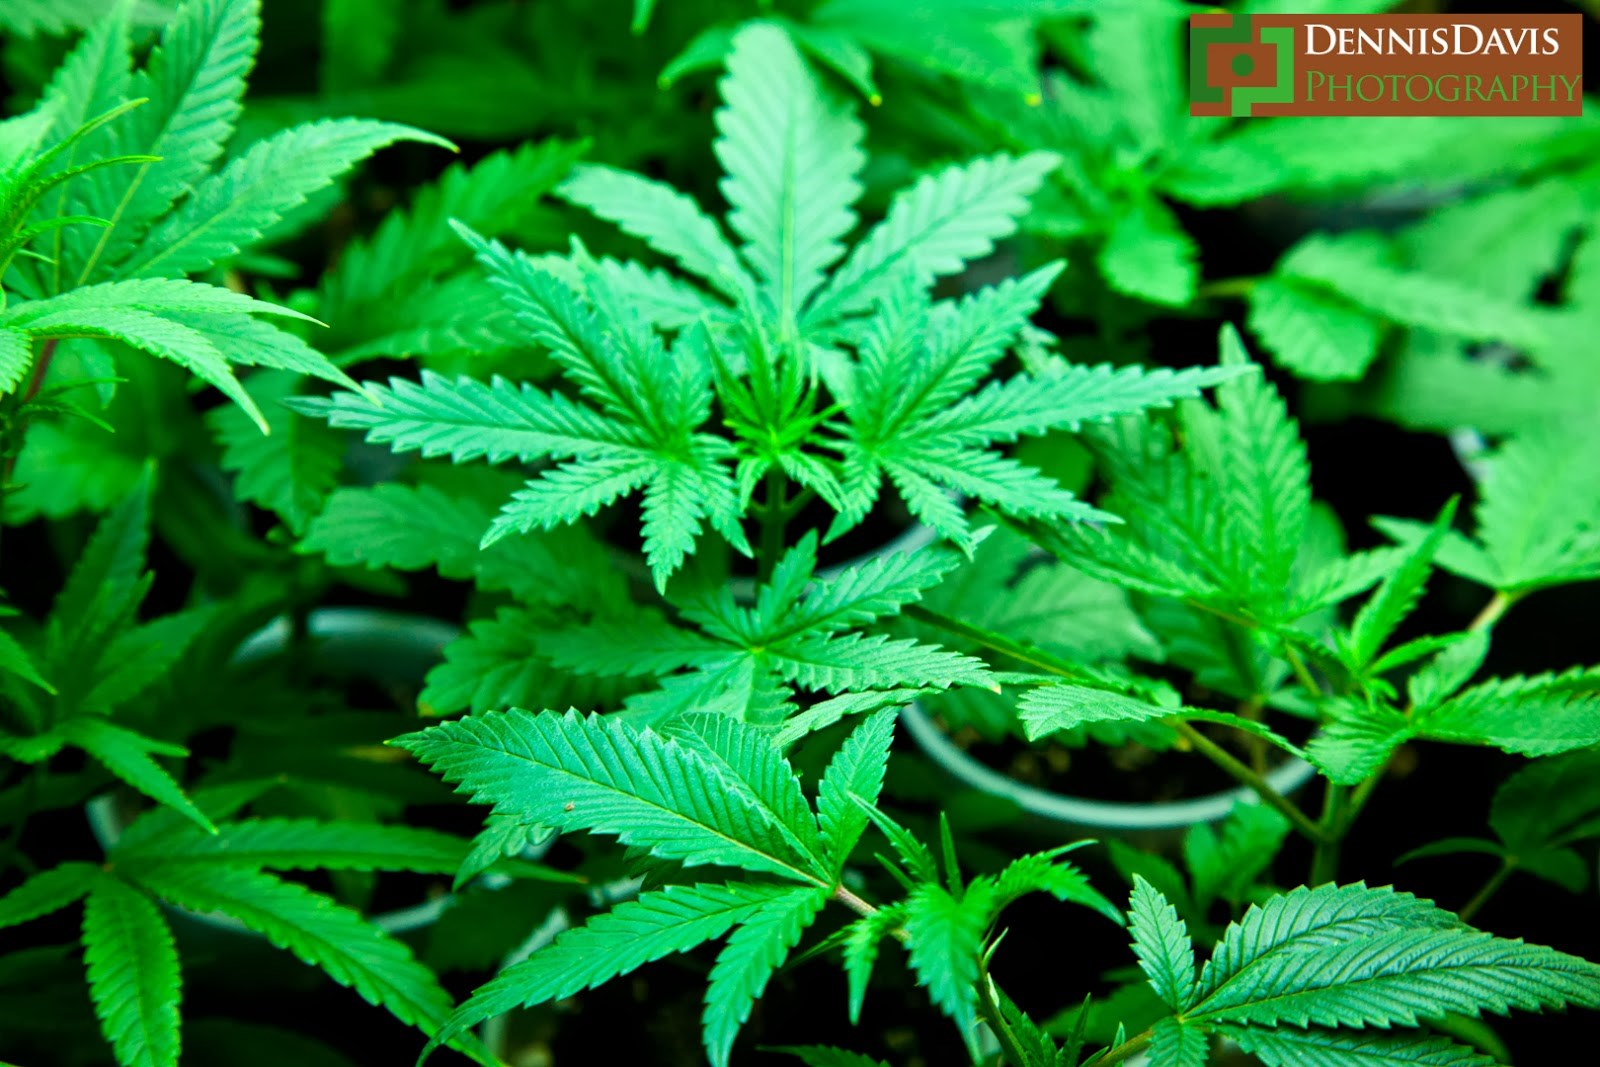 an argument in favor of the legalization of marijuana in canada Legalization of marijuana could eventually lead to the legalization of harder drugs or all drugs altogether culture shifts rarely happen overnight.